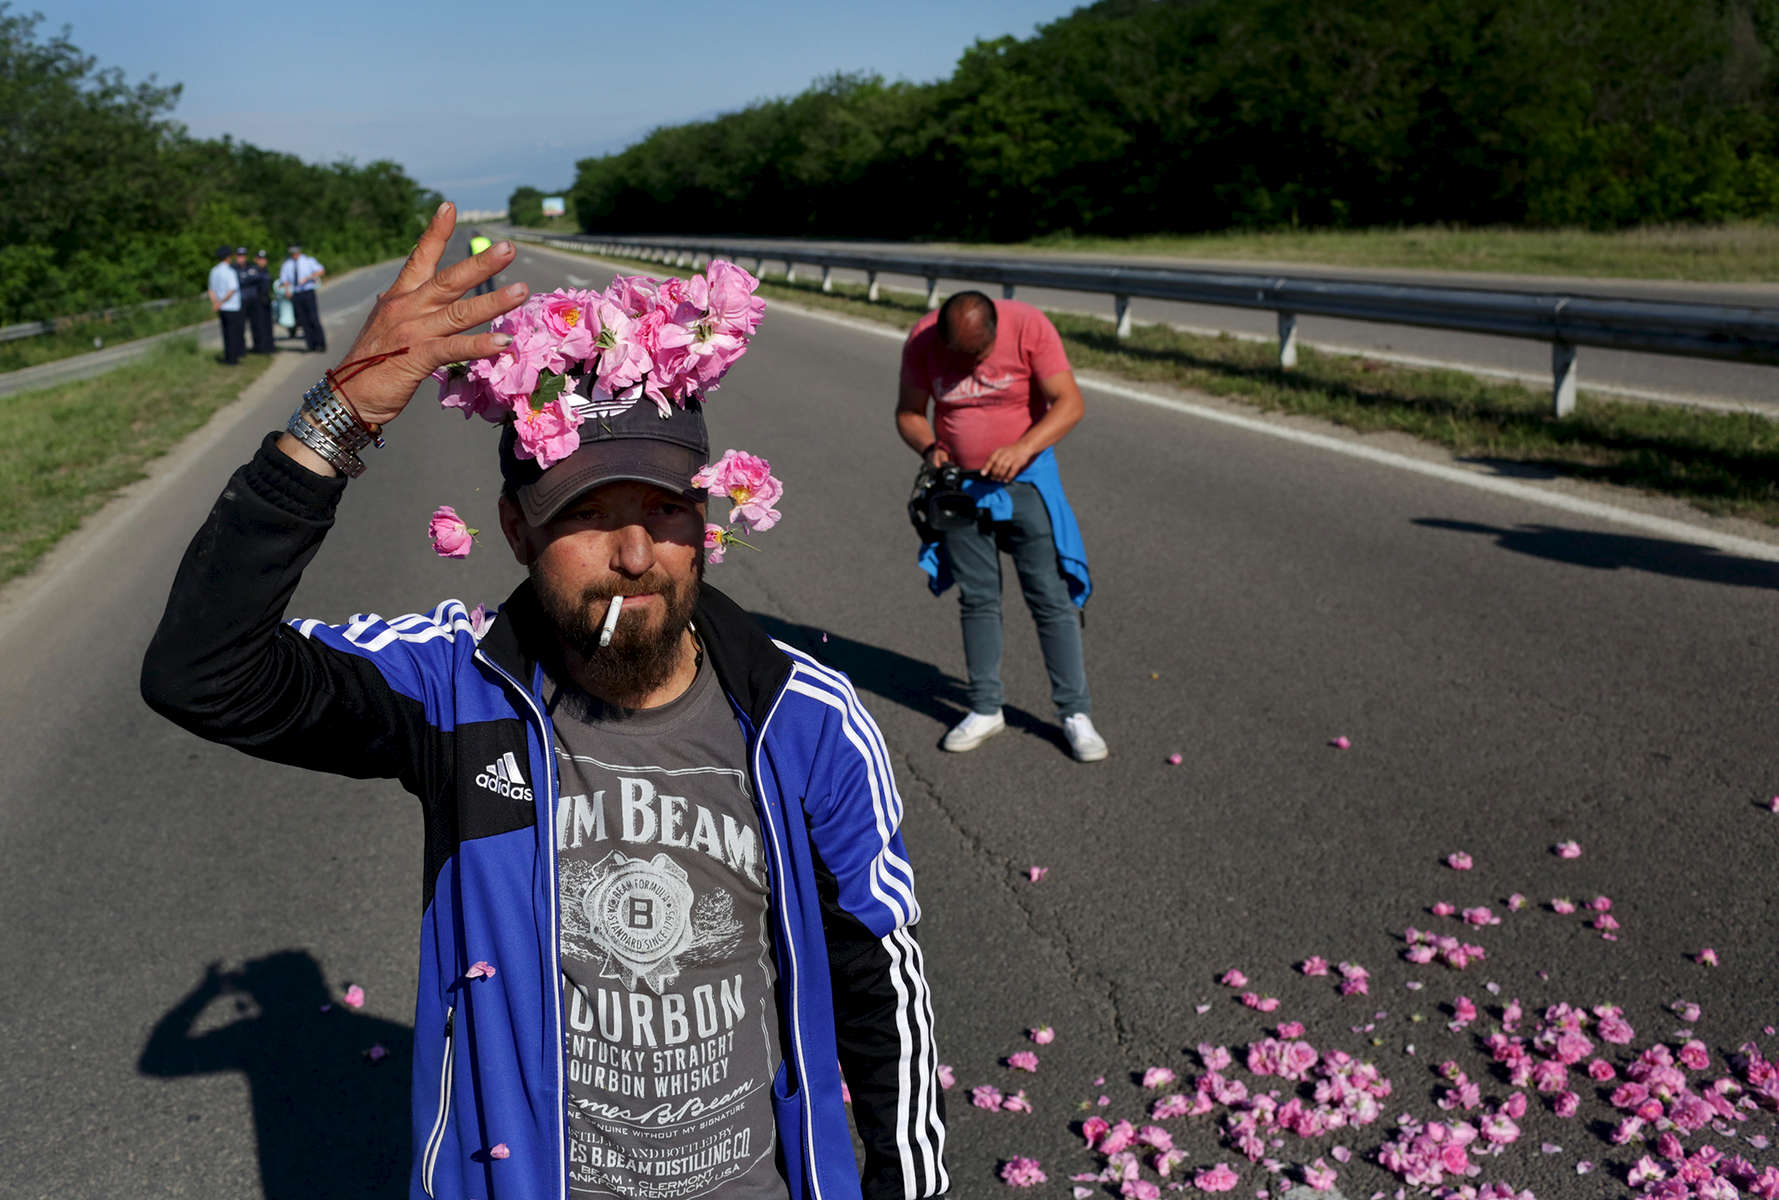 Rose producers from Kazanlak and surrounding towns and villages in Bulgaria's Rose Valley, stage a protest against the low purchase prices of rose flowers, on the road between Stara Zagora and Kazanlak on May 22, 2018. Producers say this year's rose purchase price has fallen from 3 to 5 leva BGN (currently about $1.80 to $3 USD) per kilogram in previous seasons, to just 2 leva BGN (currently about $1.20 USD) per kilogram - half of which they use to pay their rose-pickers, and use much of the rest for costs related to cultivating roses. Rose distilleries have refused to buy some of the producers' rose yield due to what they say is an inability to process any extra in an over-saturated market, with more and more rose gardens popping up each year. Some rose producers say they suspect the distilleries have instead colluded to lower the purchase prices of roses across the valley, and say they'd like the government to regulate the entire chain between producers and processors, setting a contractual minimum purchase price via a Rose Act. Bulgaria's Minister of Agriculture, Rumen Porozhanov, has announced he is indeed considering a law on oil-bearing roses - and perhaps other essential oil crops, like lavender.Photo by: Yana Paskova for National Geographic Traveler